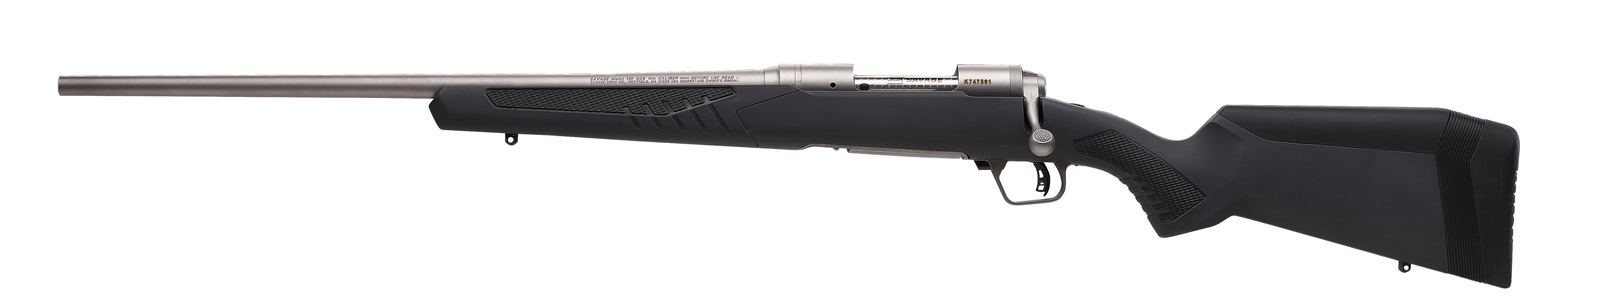 Savage Arms 110 Storm LH